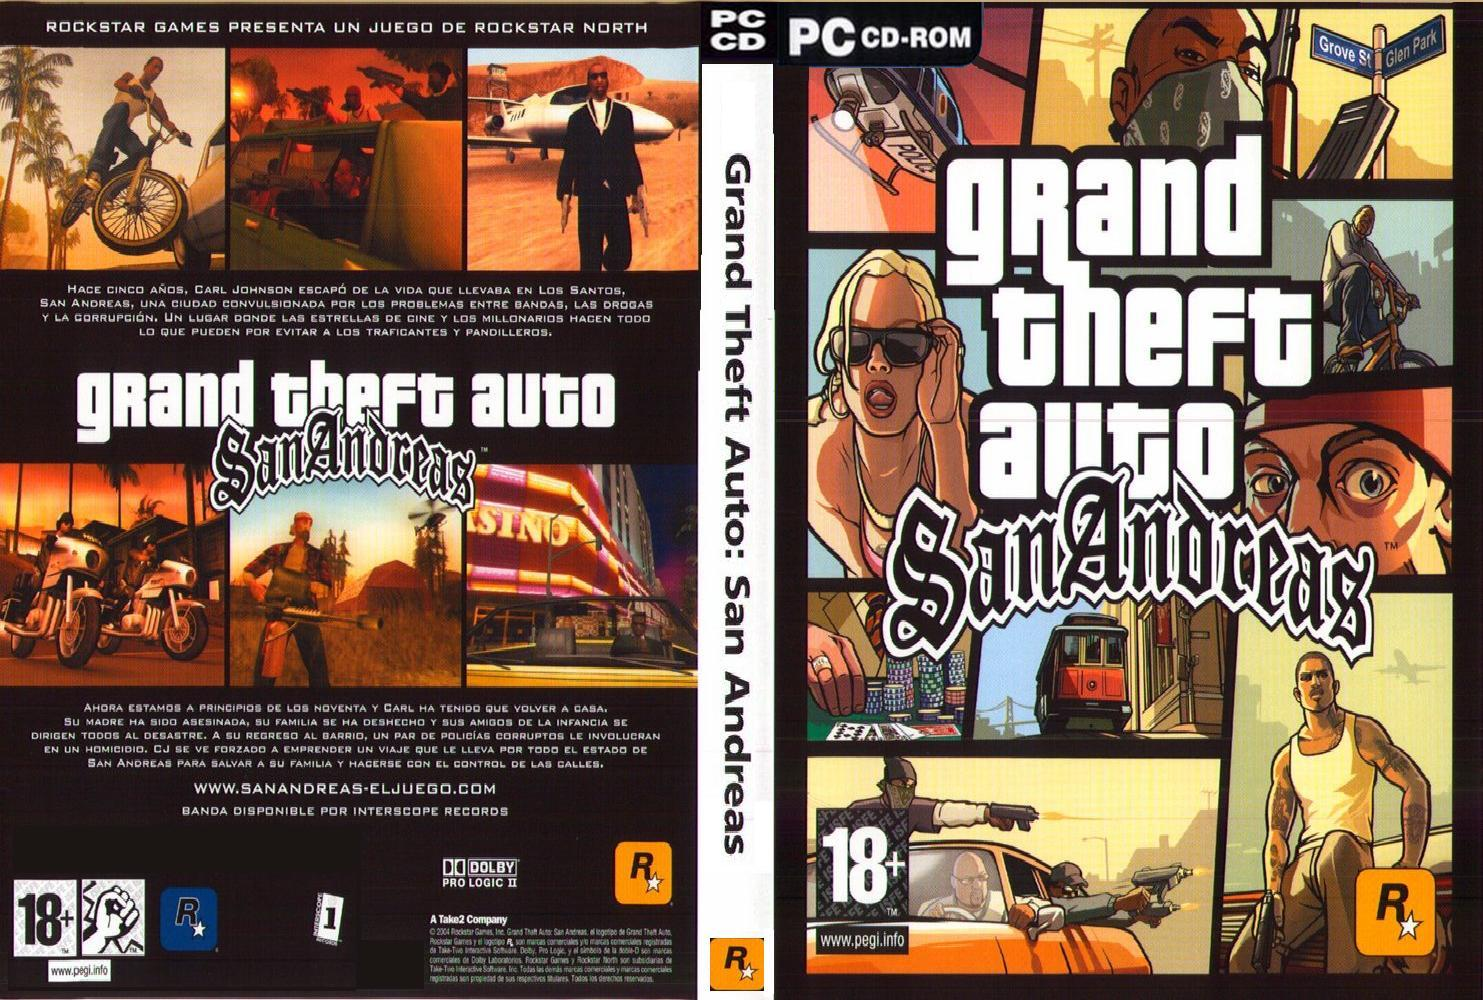 Grand theft auto san andreas pc dvd espanol pc